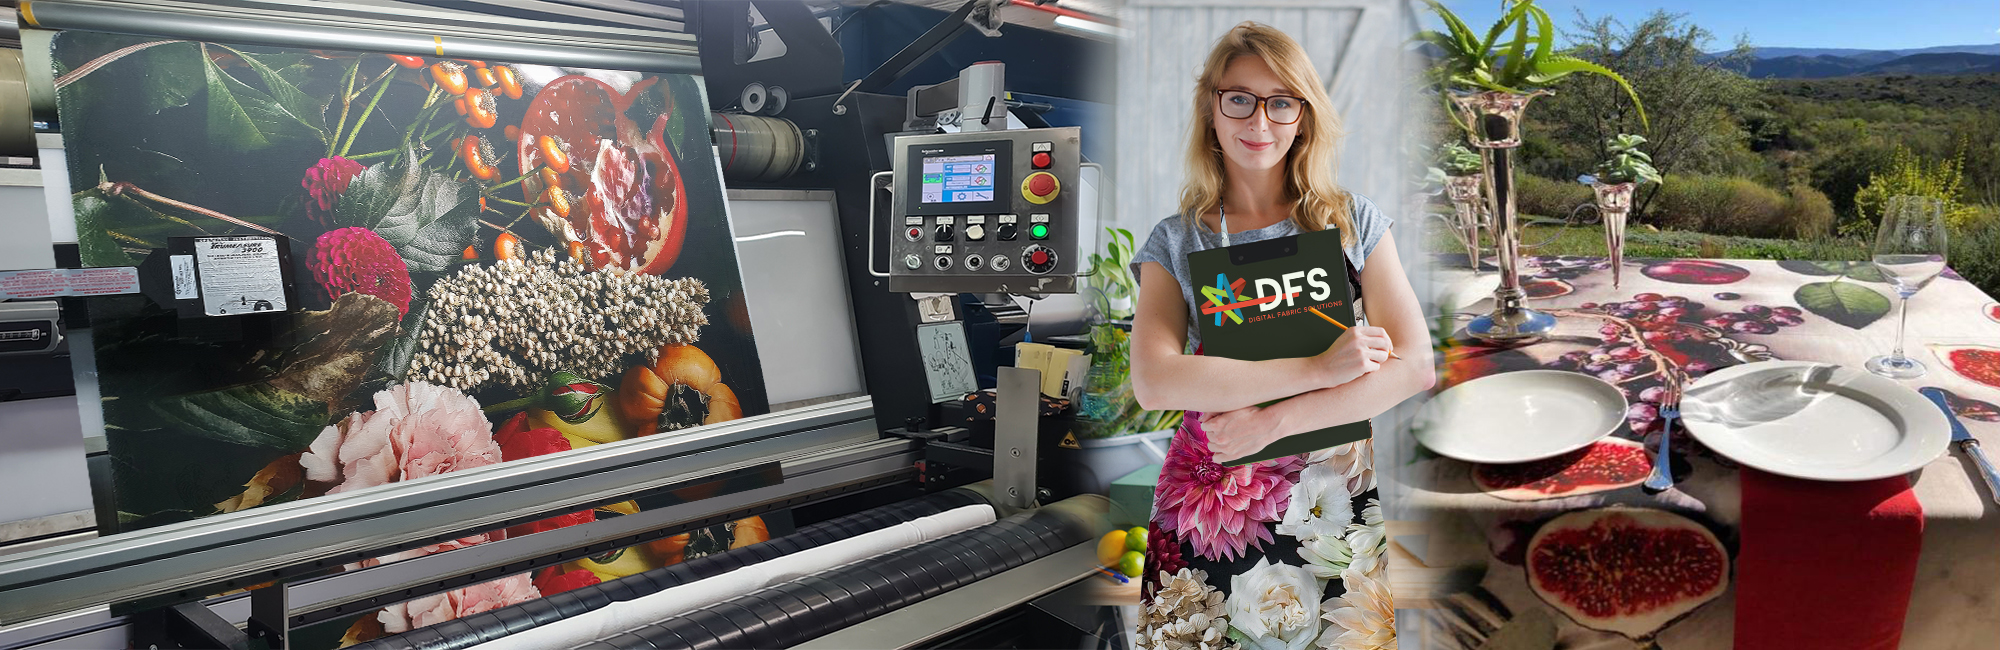 Digital fabric printing for fabrics and textiles for home decor